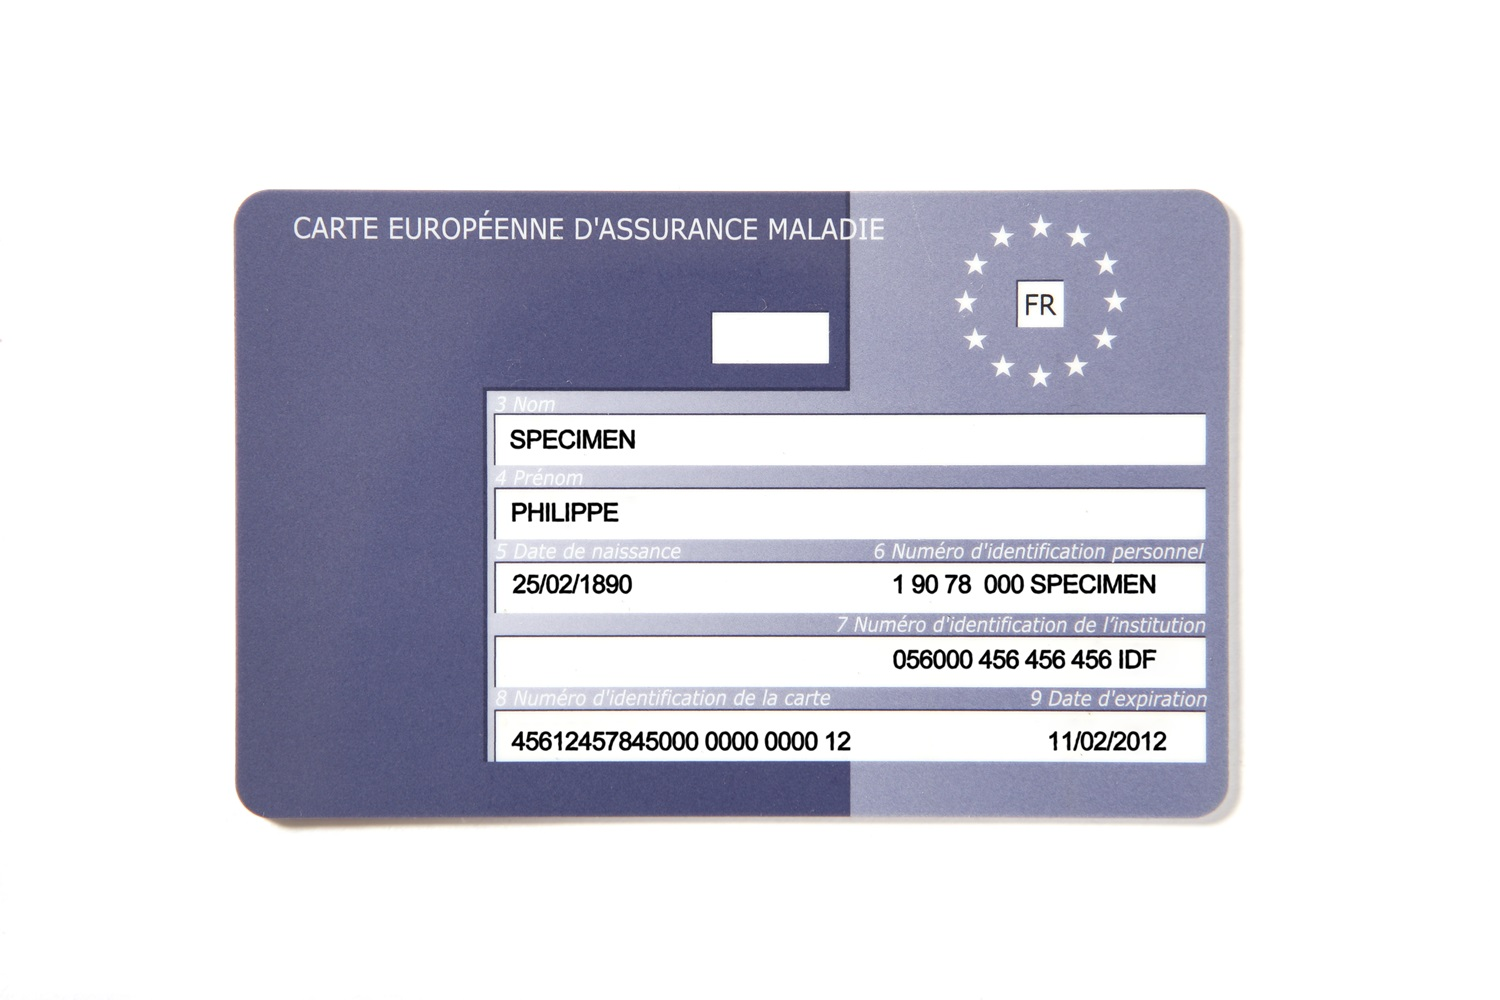 carte europeenne